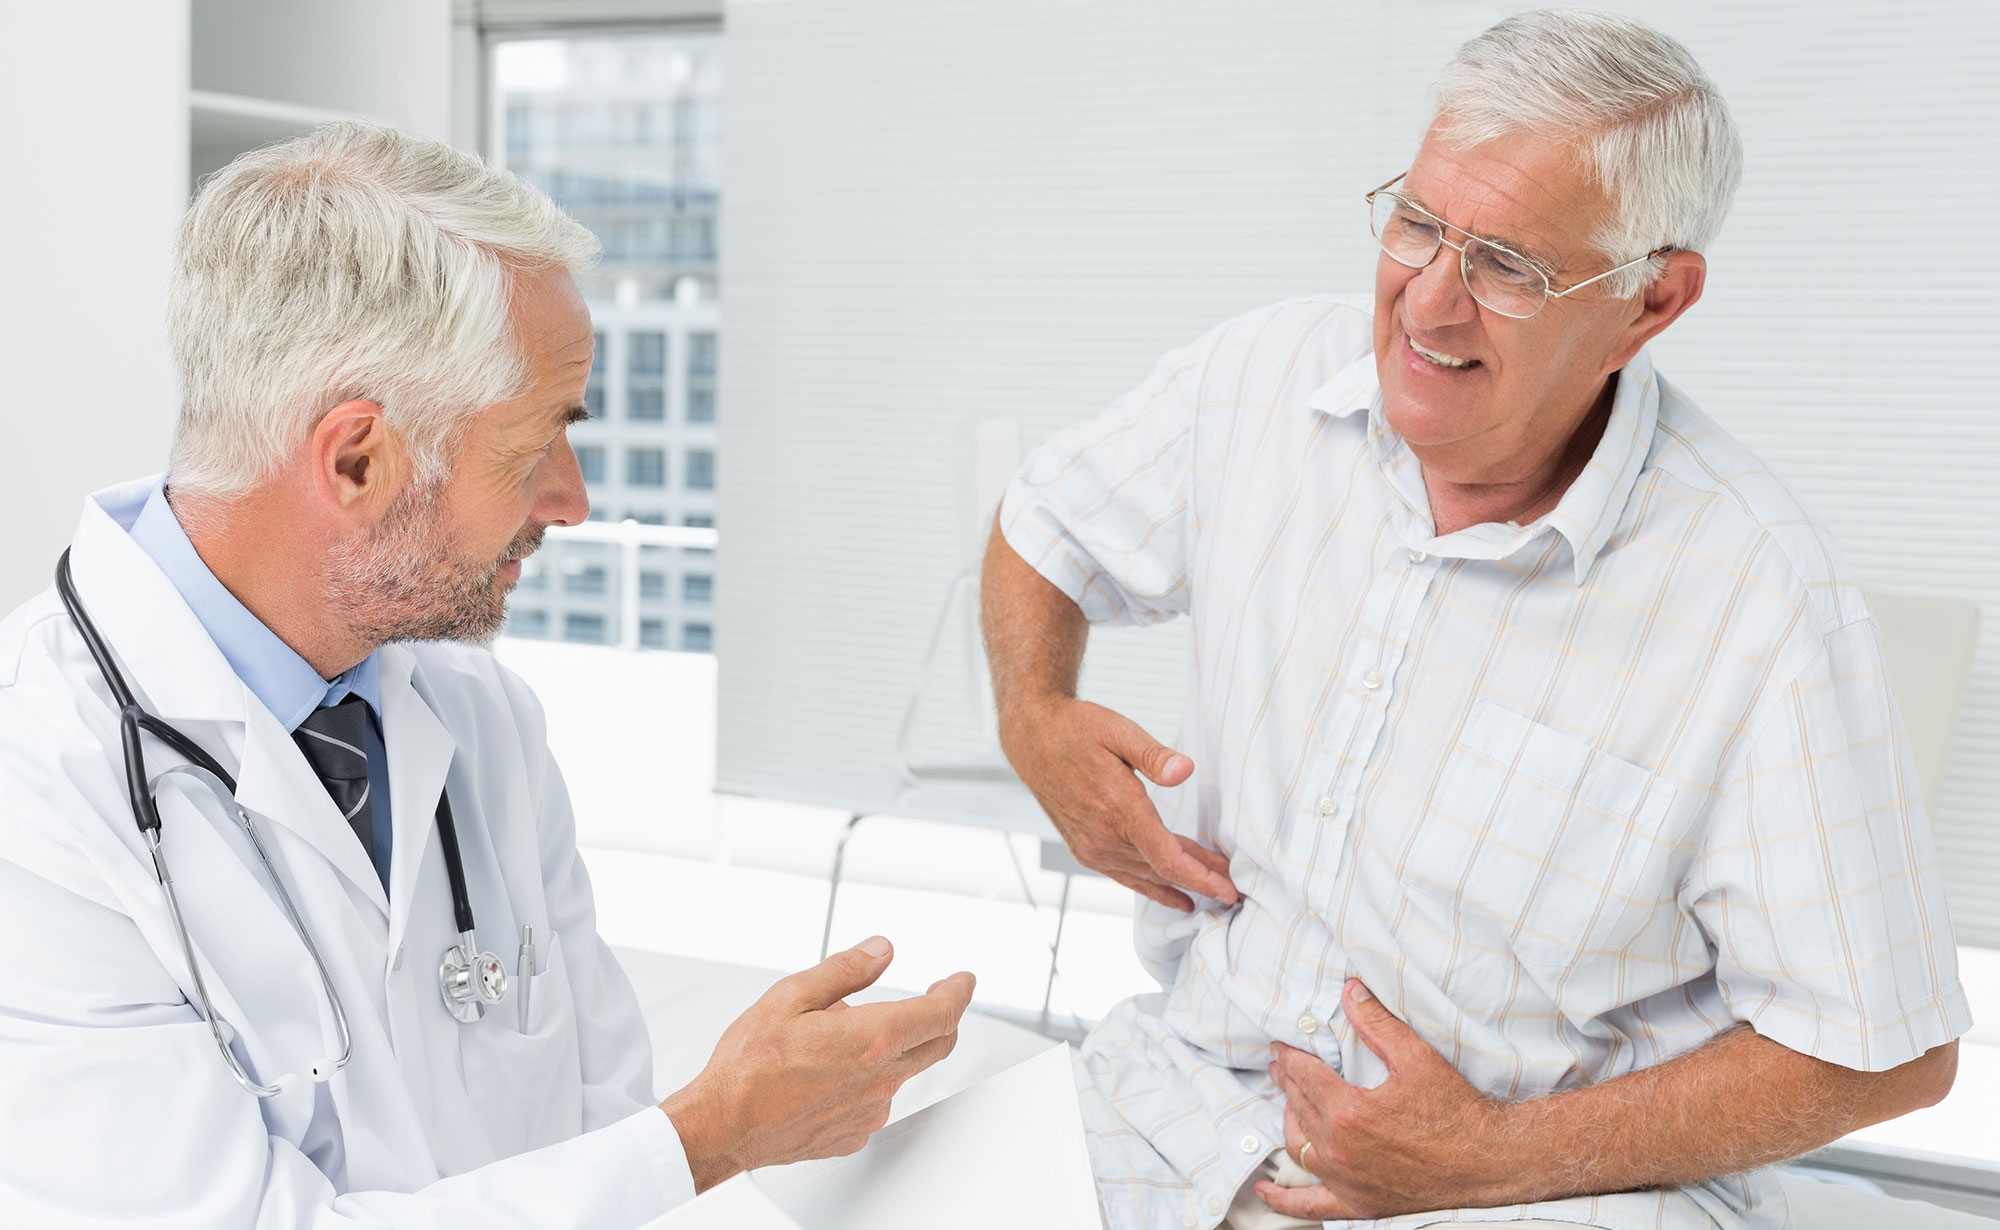 Does Hot Weather Increase the Risk of Kidney Stones